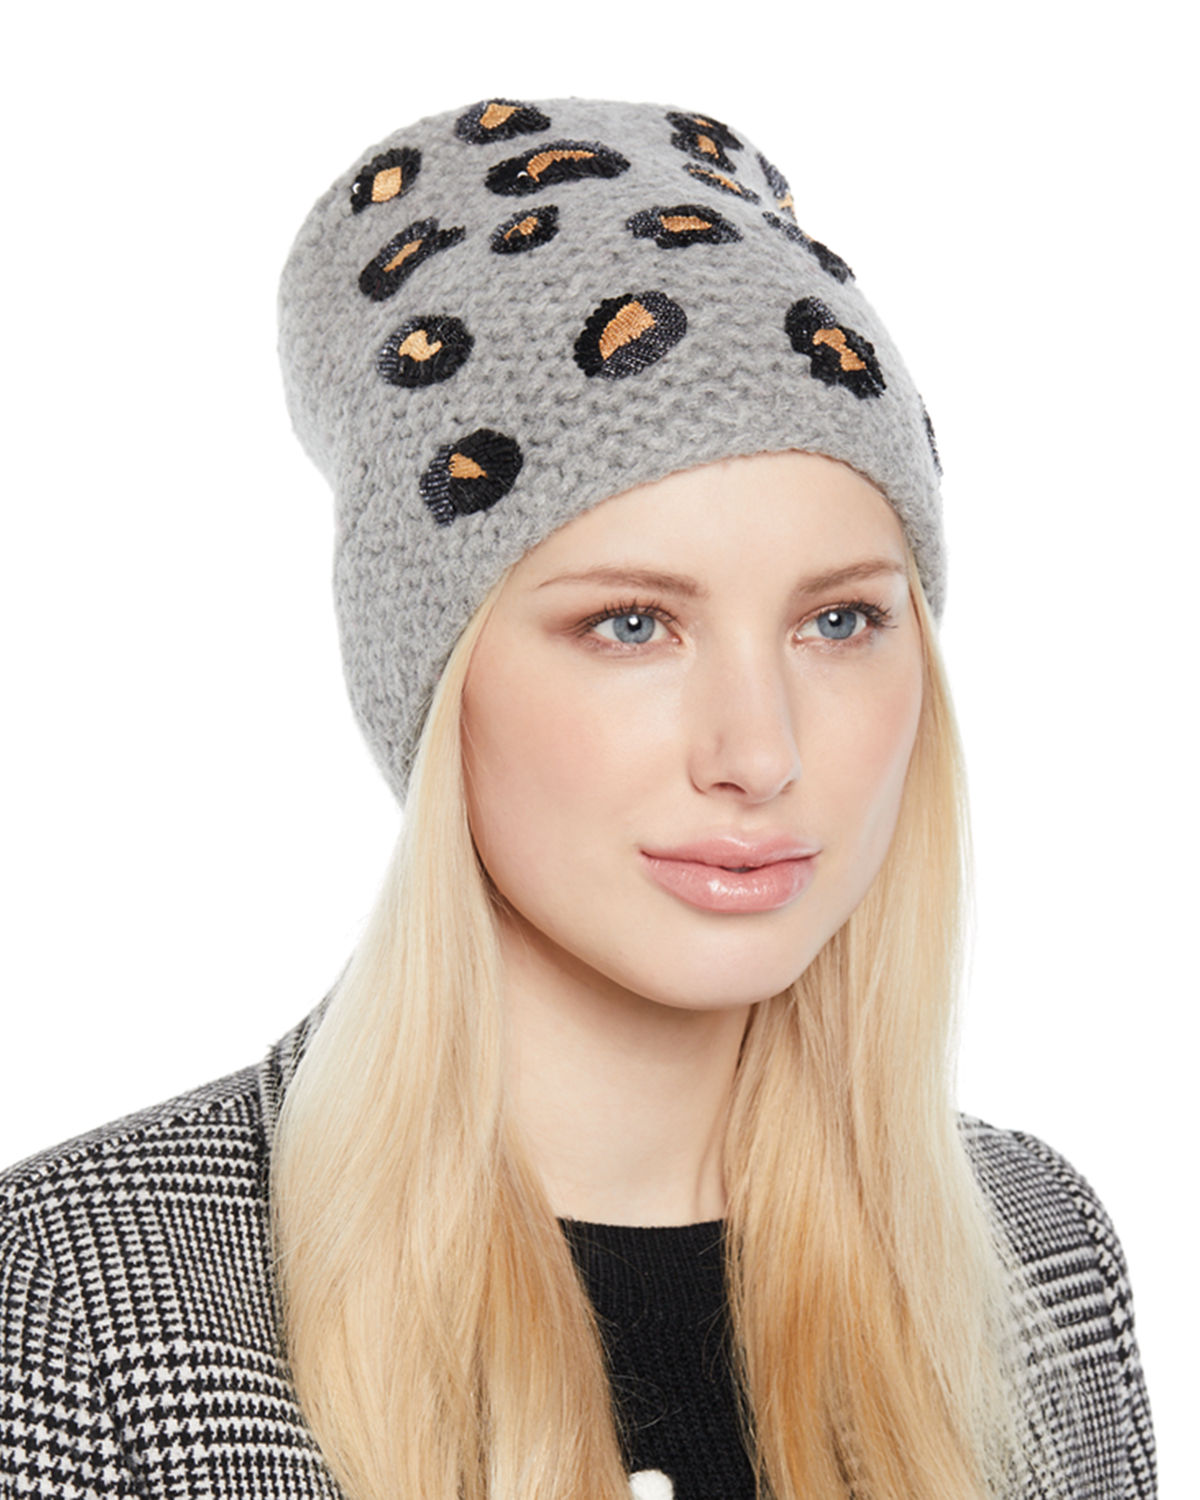 Buy beanies hats for women - Best women s beanies hats shop - Cools.com 0afa5edecf